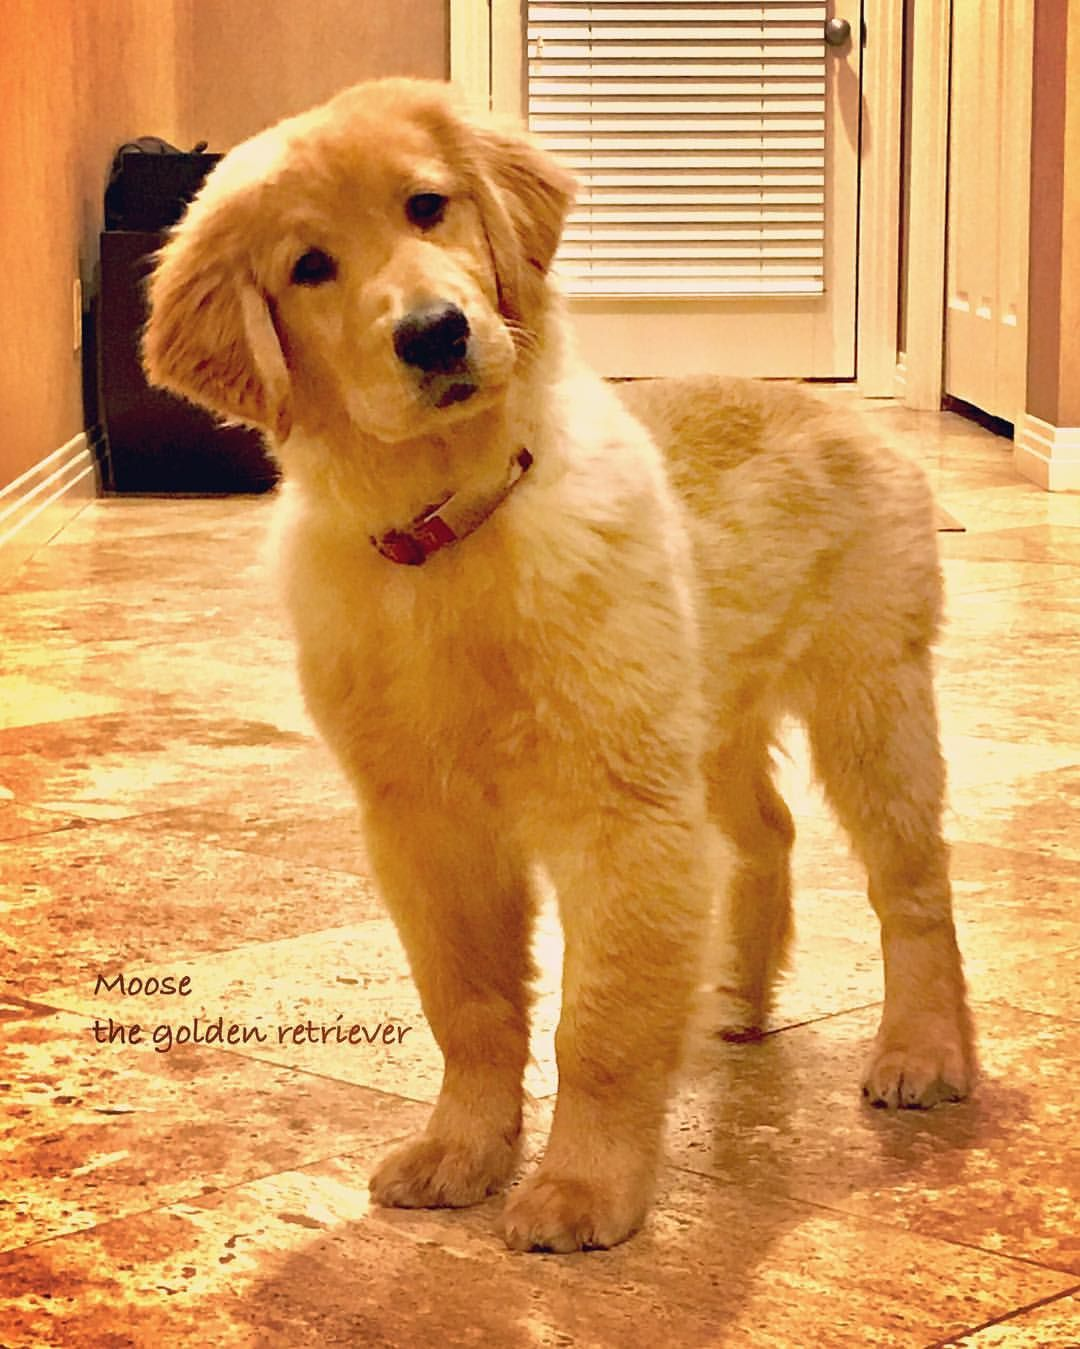 Moose Golden Retriever Pup Classic Look Dogs Golden Retriever Golden Retriever Retriever Puppy